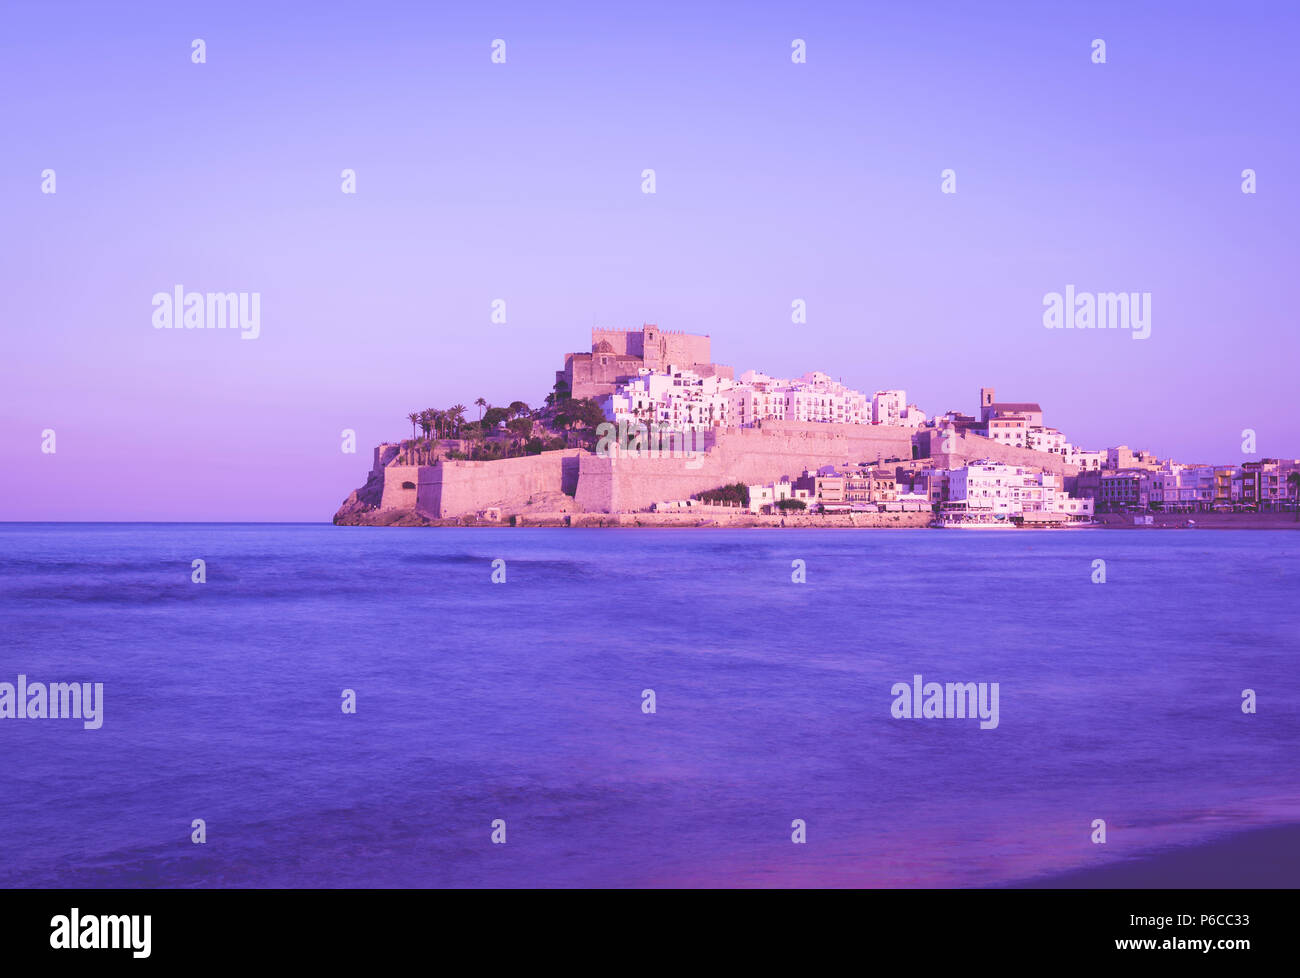 Castle of Peniscola, located on Costa del Azahar in the Castellon province of Spain, ultraviolet color style - Stock Image